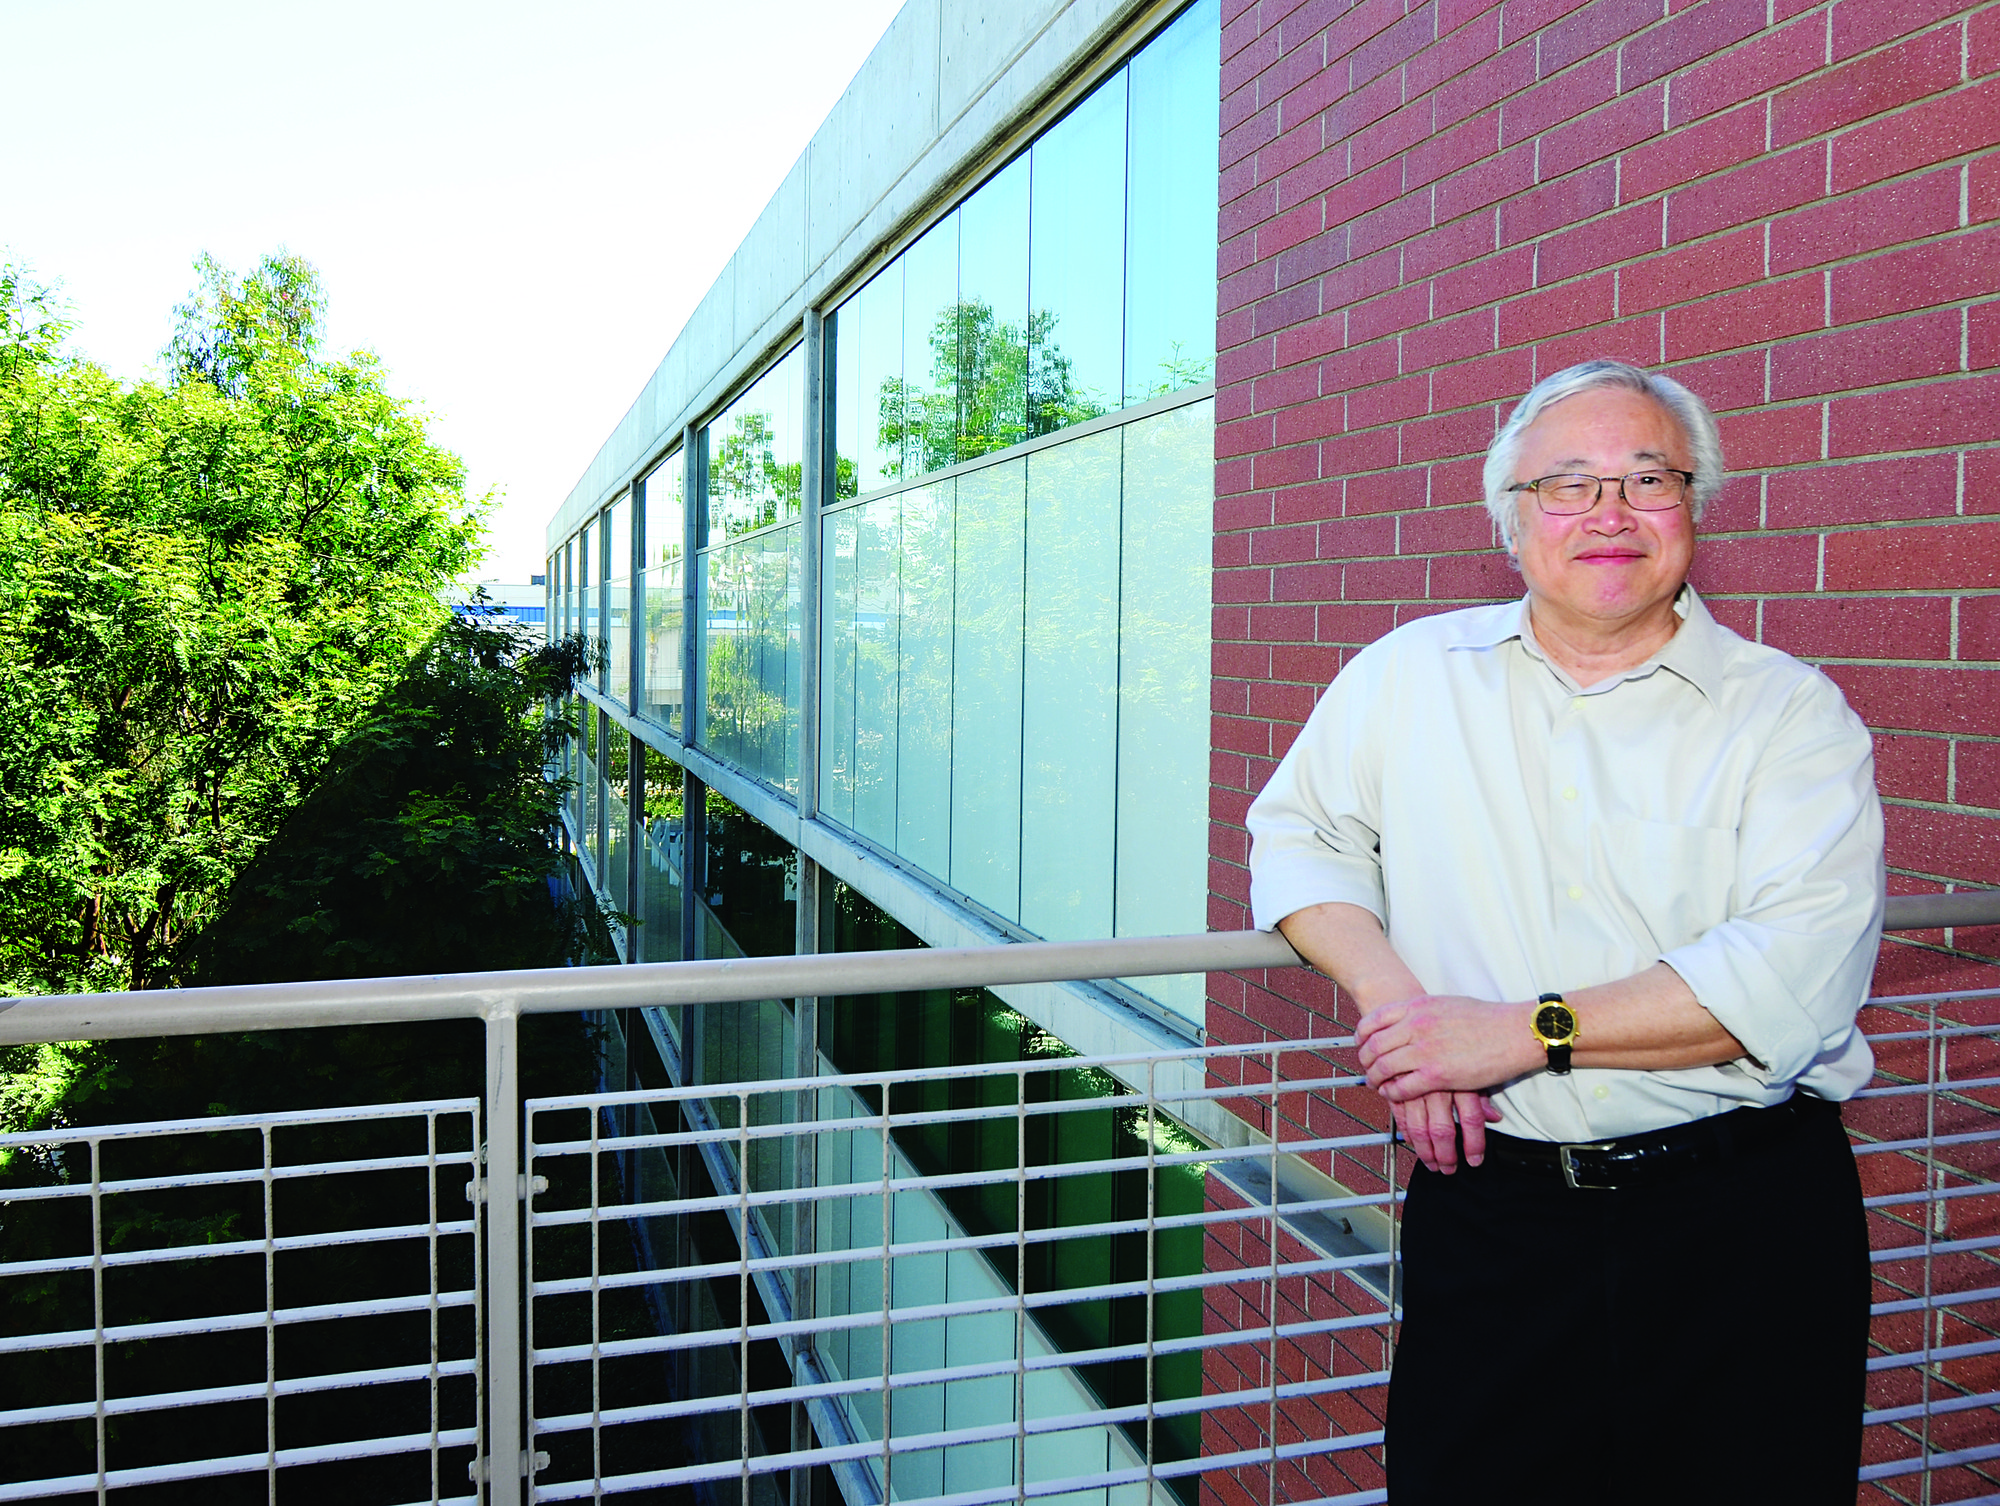 Dean of Humanities bids farewell after almost 31 years